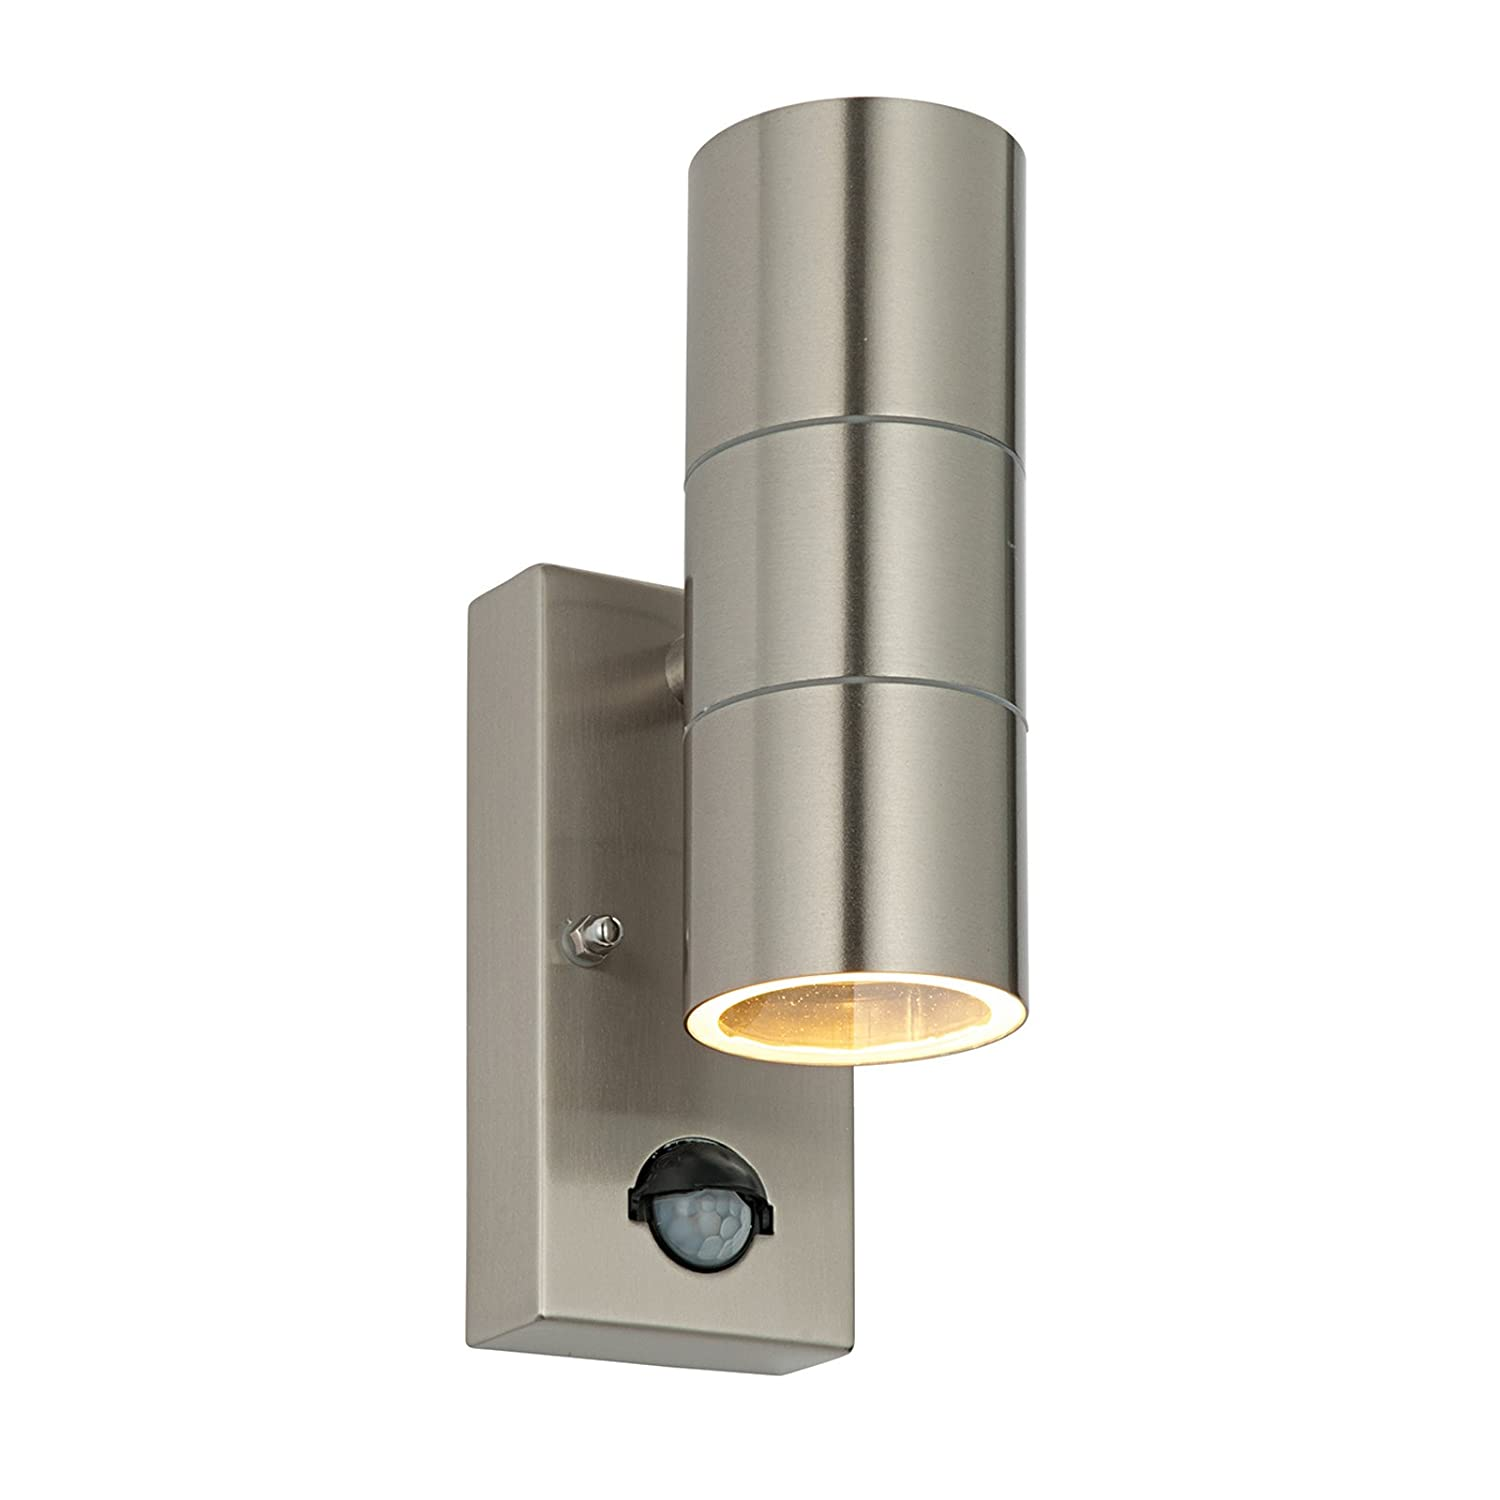 Saxby palin 35w brushed stainless steel pir outdoor garden ip44 saxby palin 35w brushed stainless steel pir outdoor garden ip44 motion sensor steel up down wall light amazon garden outdoors aloadofball Choice Image